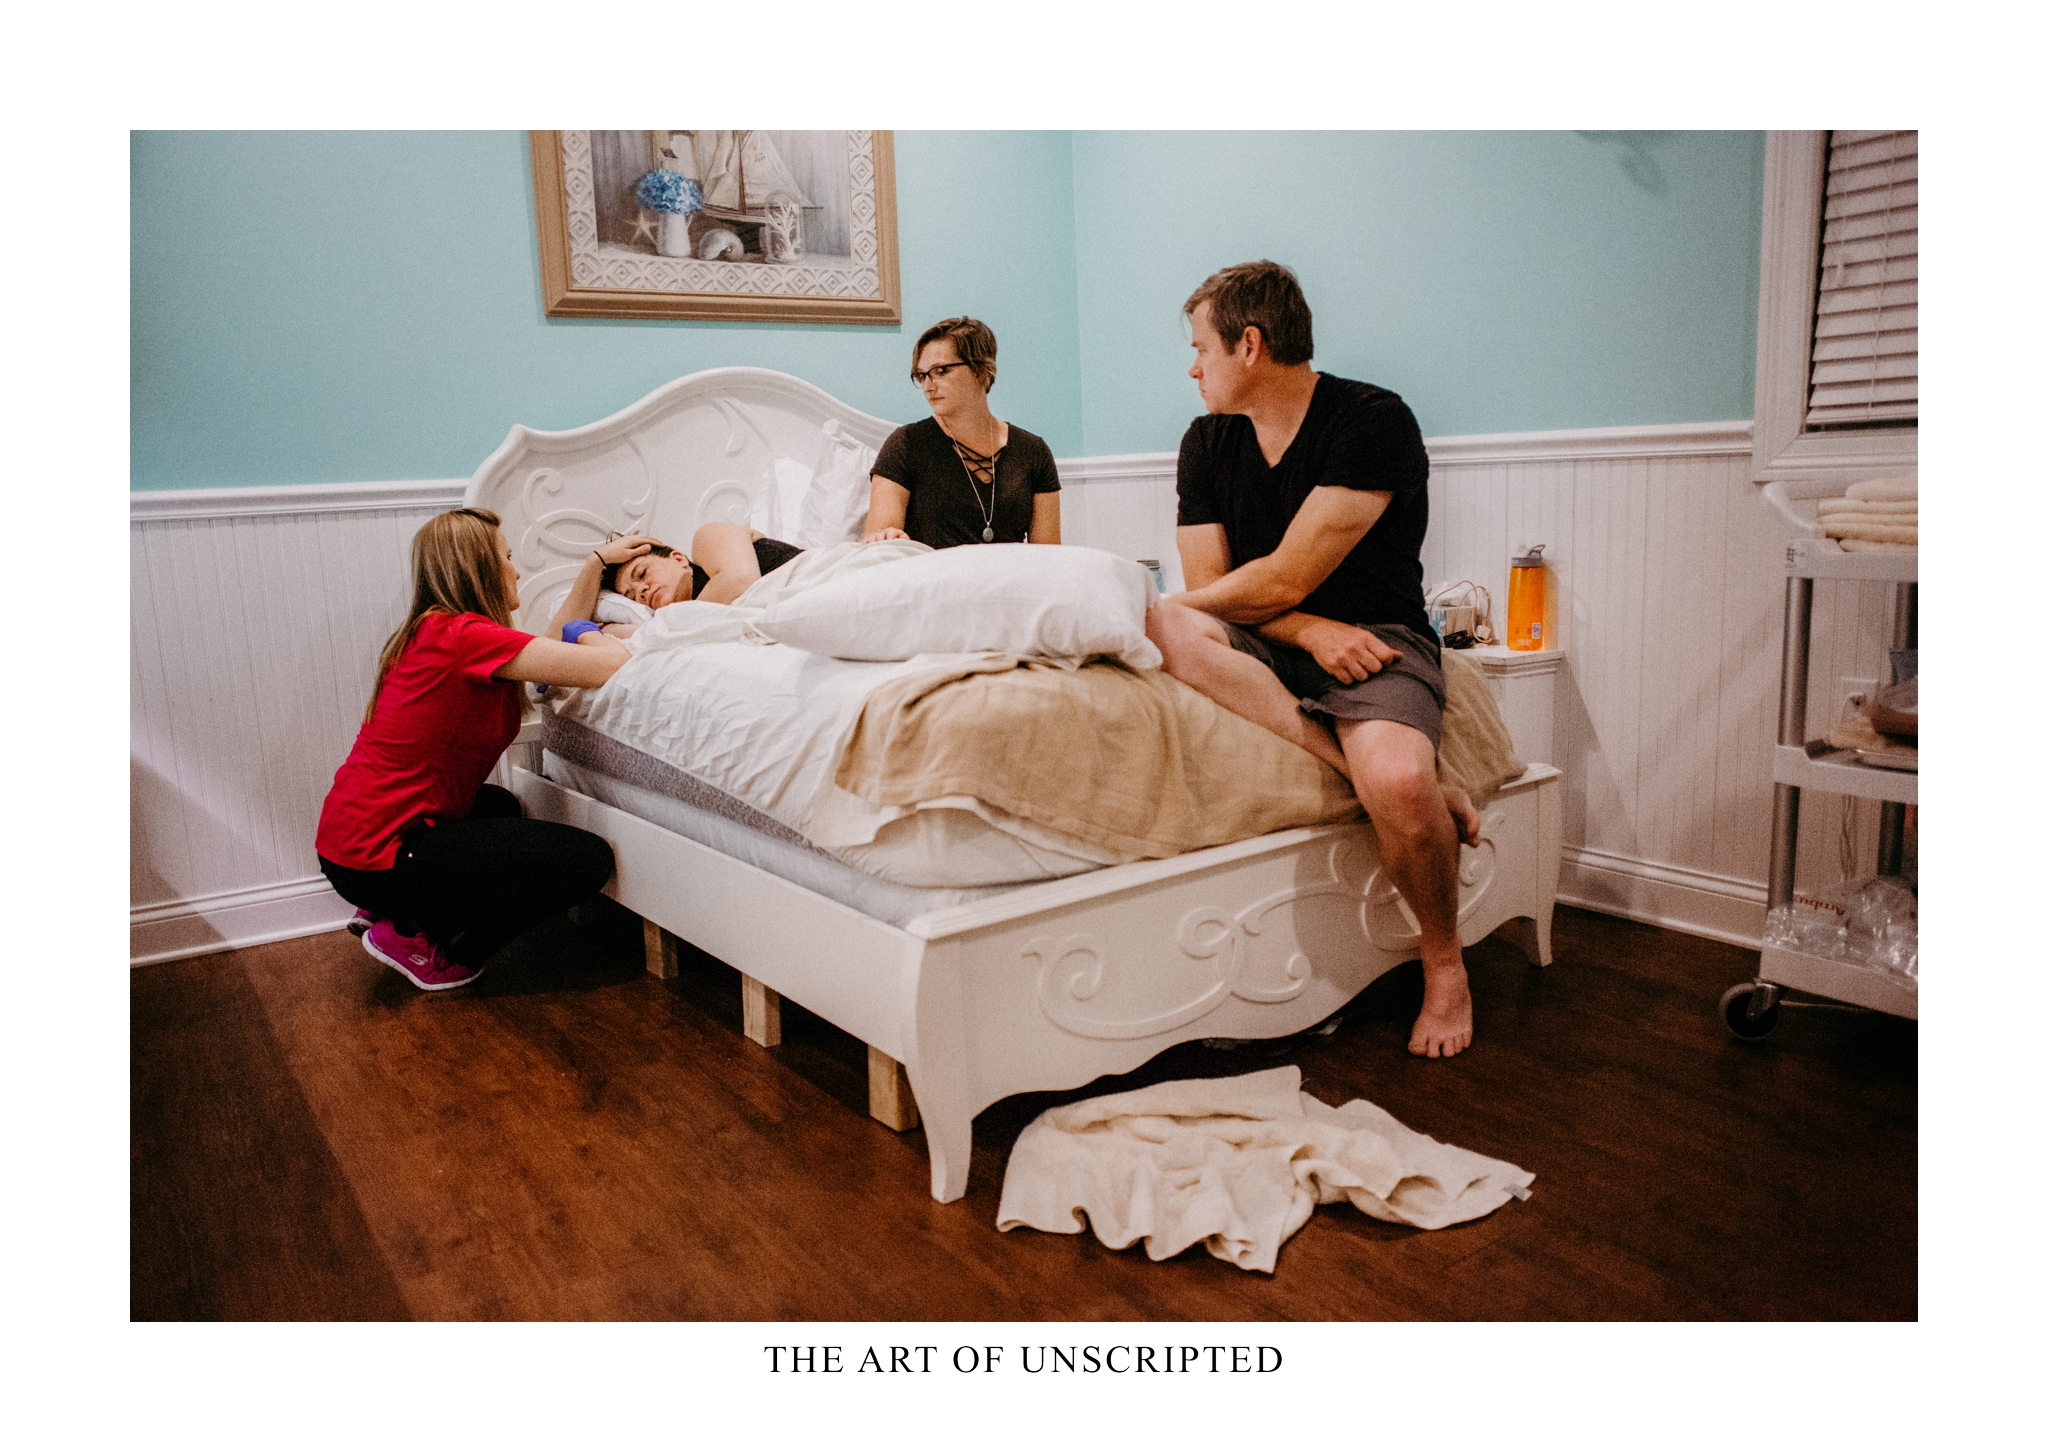 2017-06-10_224137__THE ART OF UNSCRIPTED_SPRINGFIELD MO_BIRTH PHOTOGRAPHER_ DOCUMENTARY_STORYTELLING_417_PHOTOGRAPHER